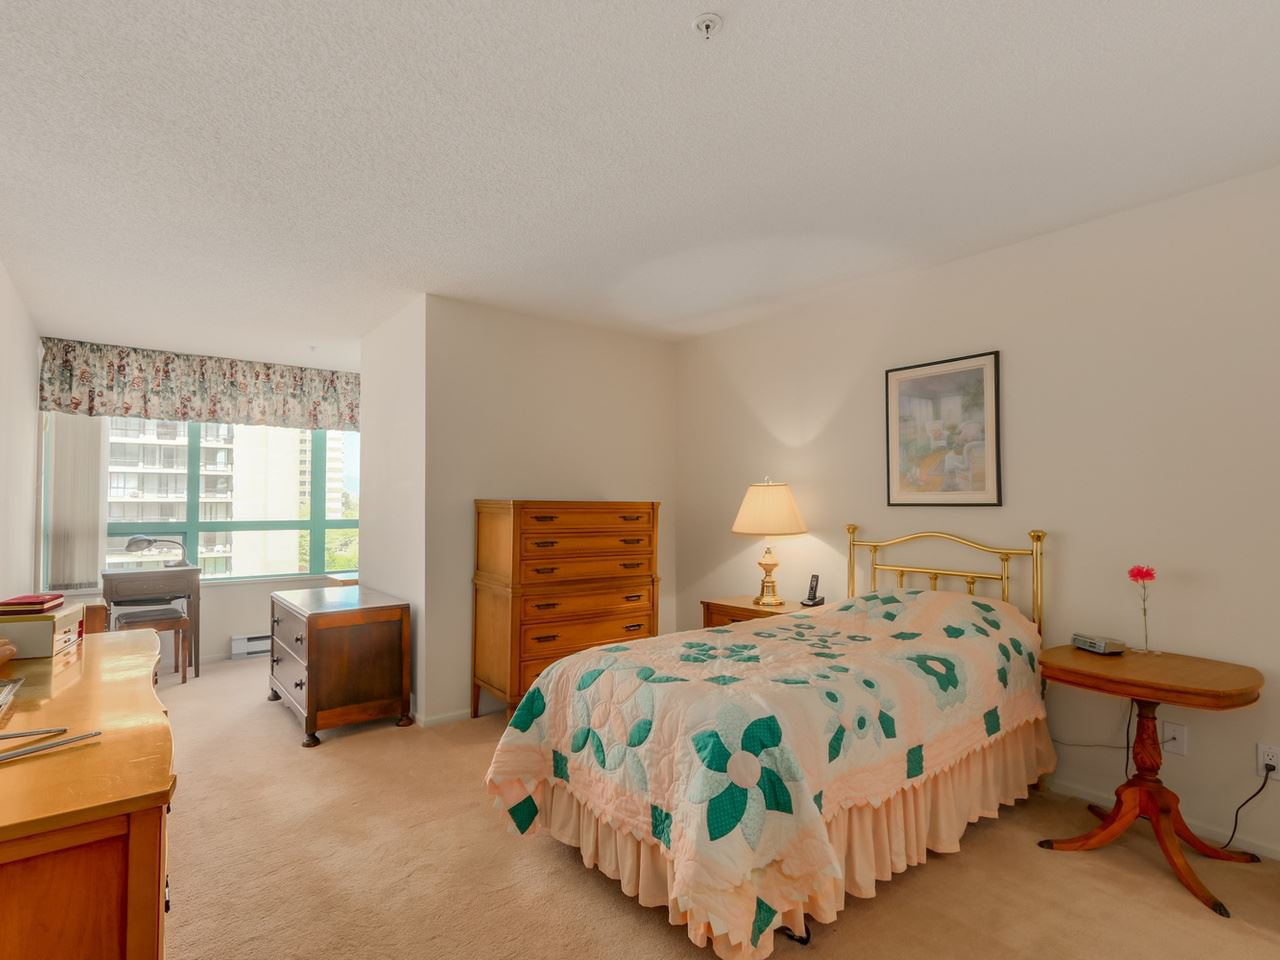 Photo 7: Photos: 403 728 PRINCESS Street in New Westminster: Uptown NW Condo for sale : MLS®# R2061685